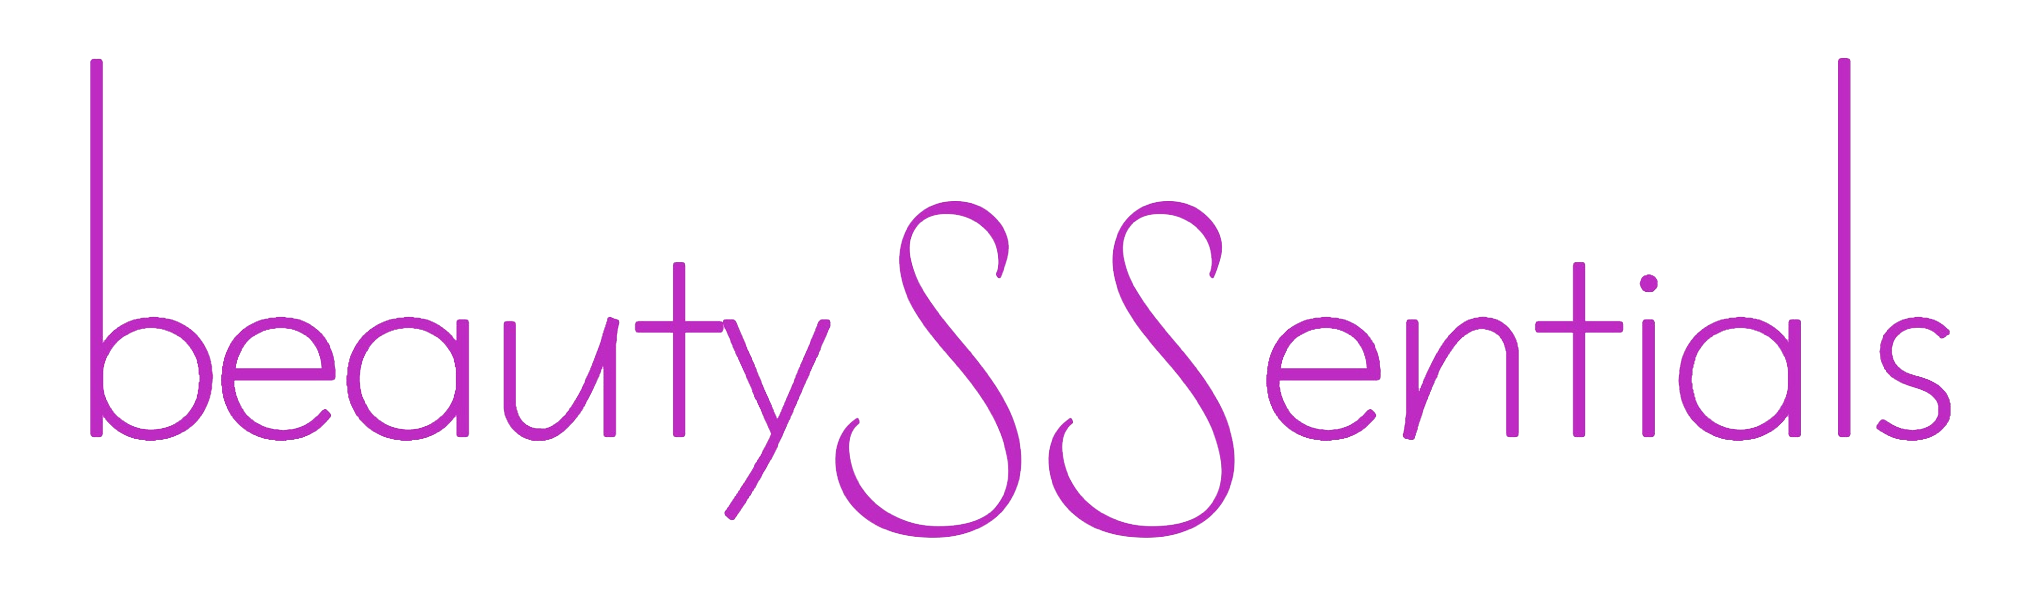 BeautySSentials logo